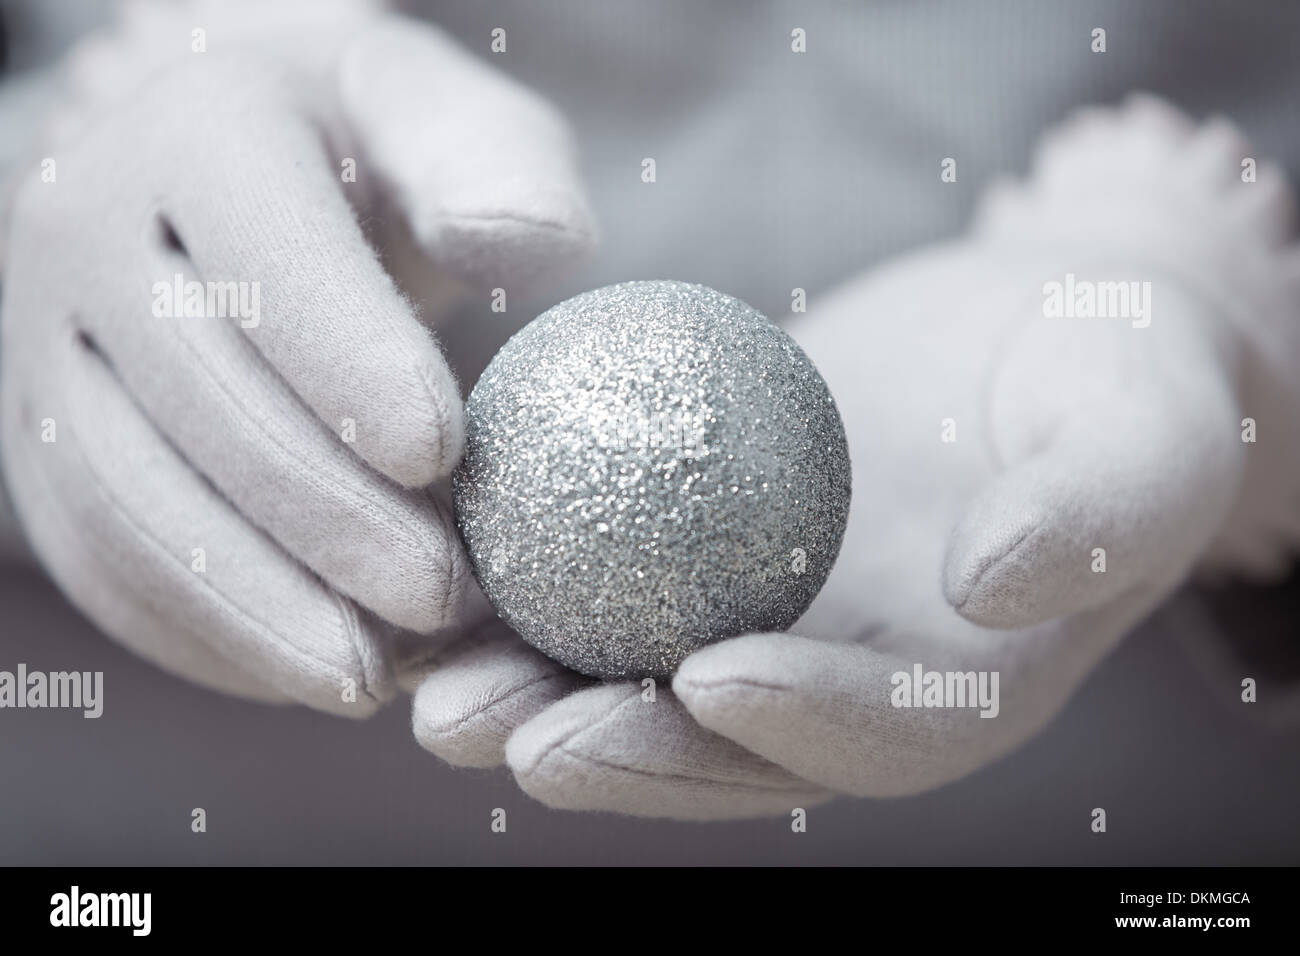 Human hands in warm mittens holding Christmas ball - Stock Image